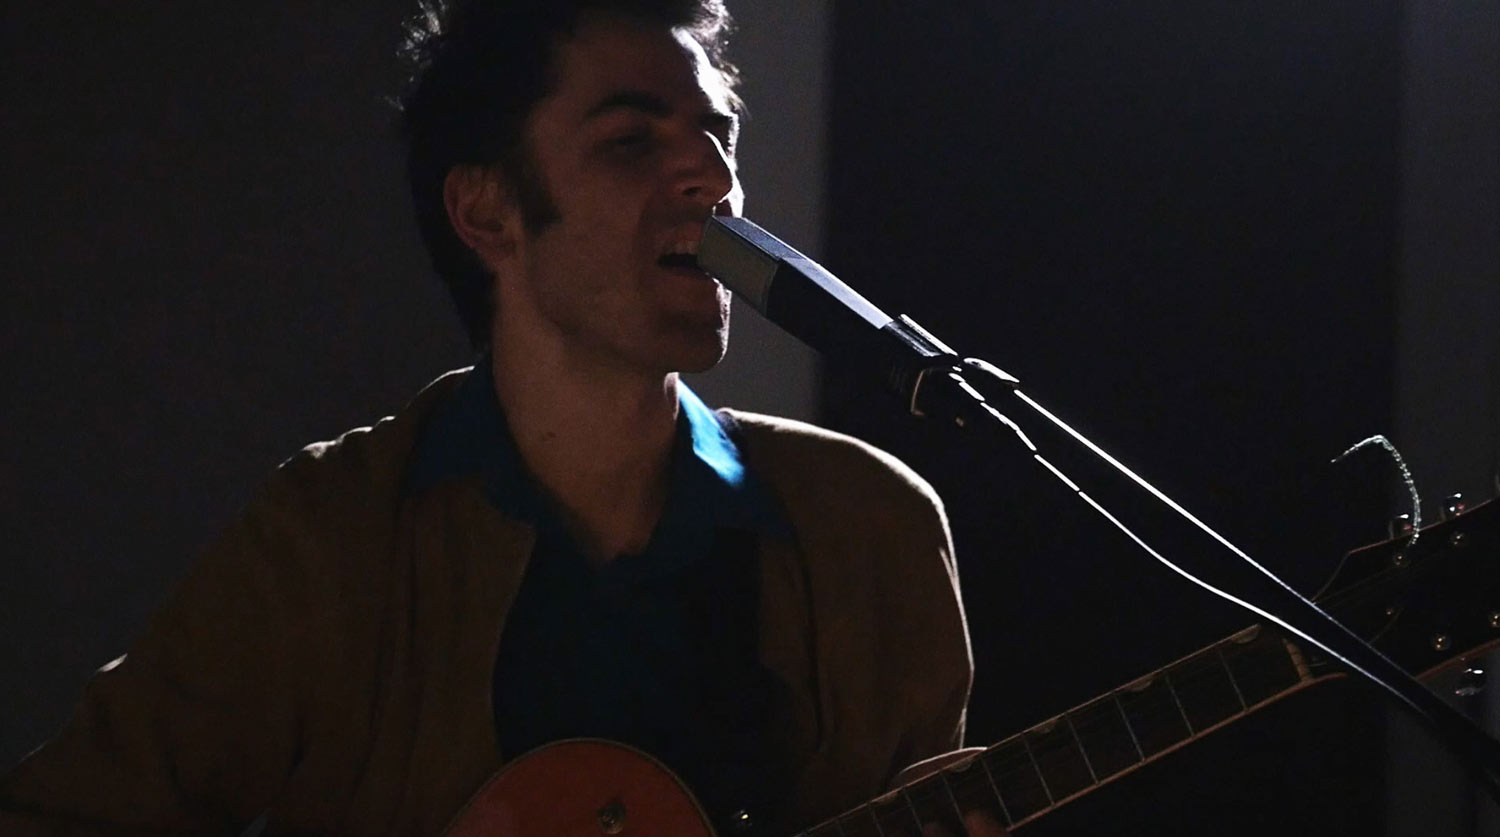 Don The Tiger - Cantos al Aral Menguante. Live session and short documentary